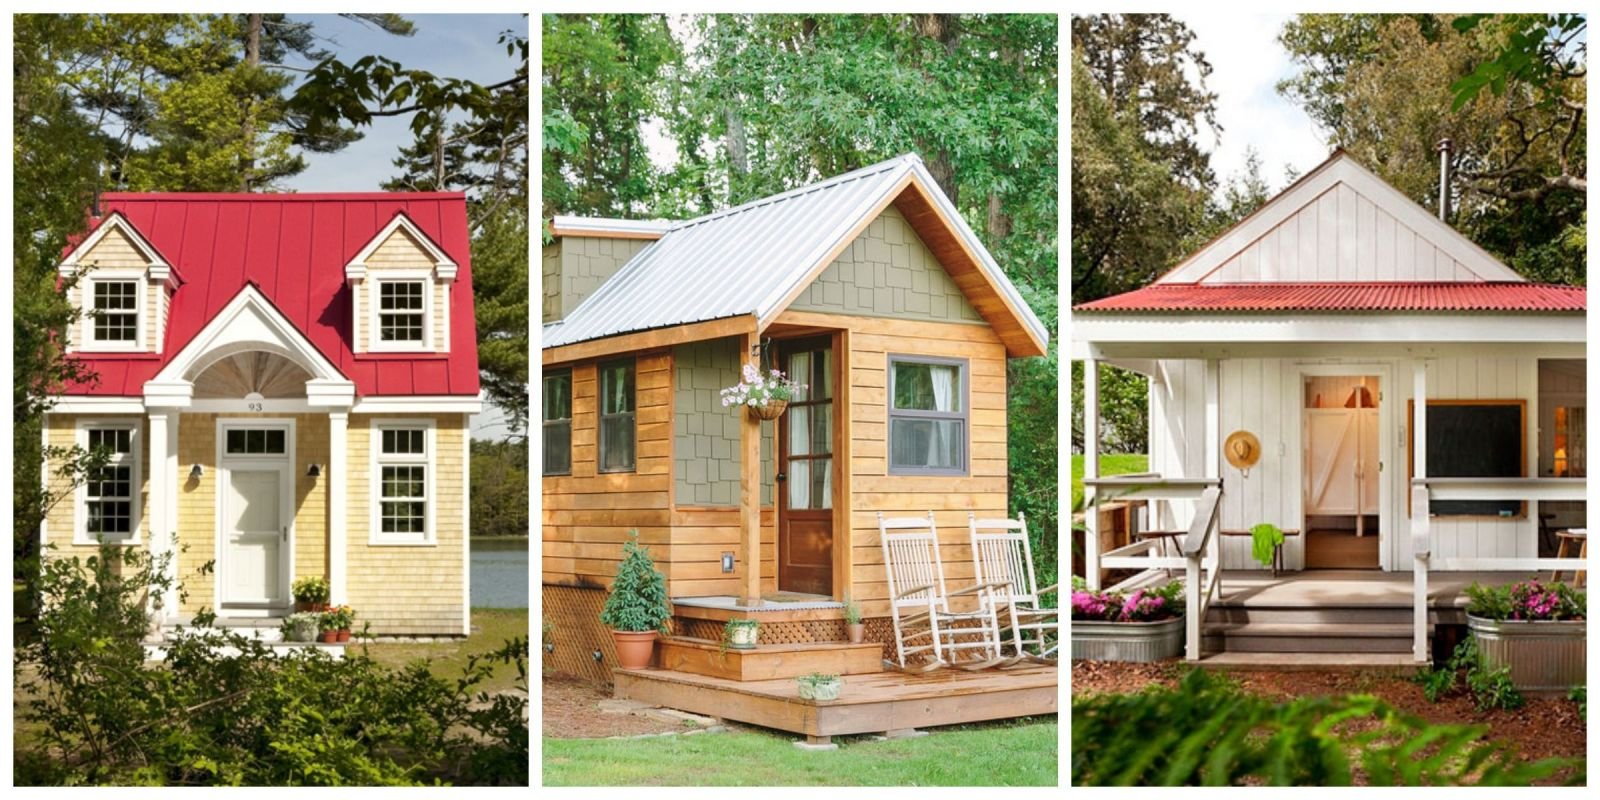 Astounding 60 Best Tiny Houses 2017 Small House Pictures Plans Largest Home Design Picture Inspirations Pitcheantrous